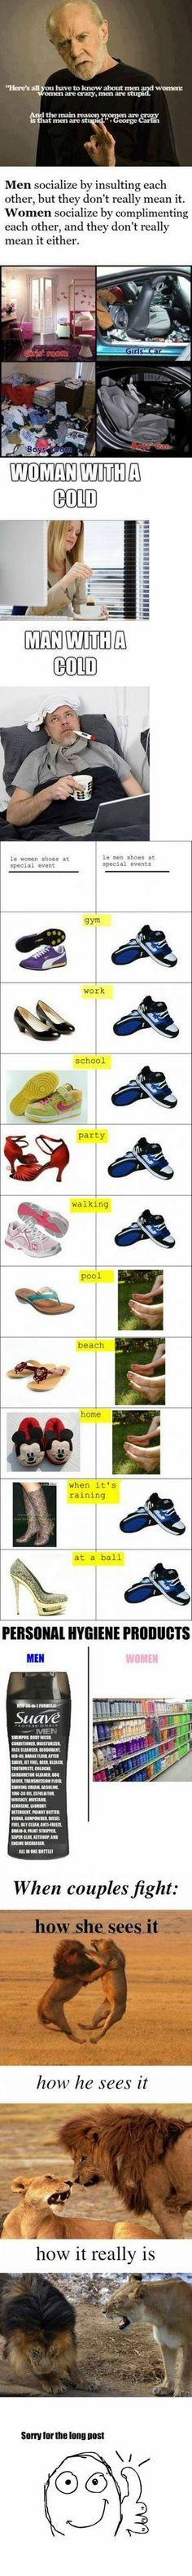 Main Difference Between Men And Women